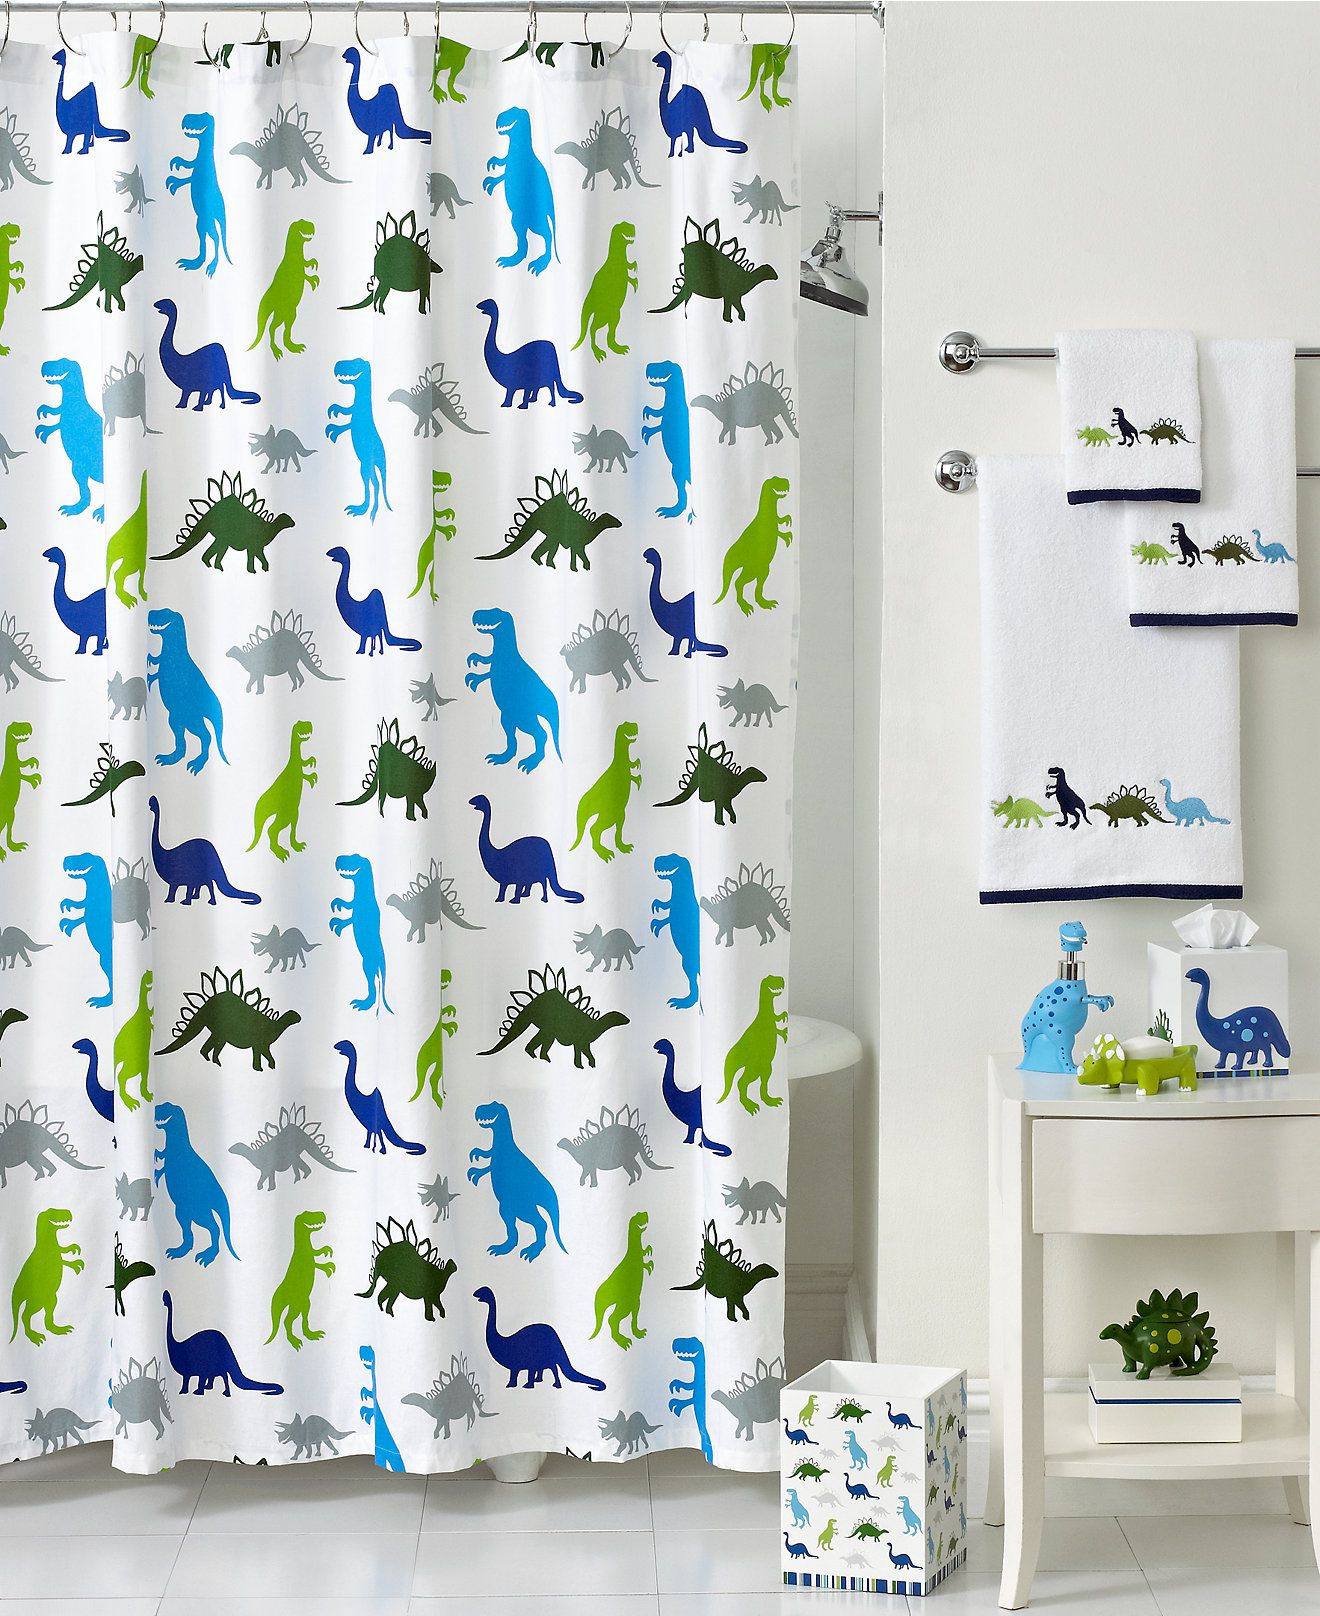 Kids Bathroom Sets For Kid Friendly Bathroom Design